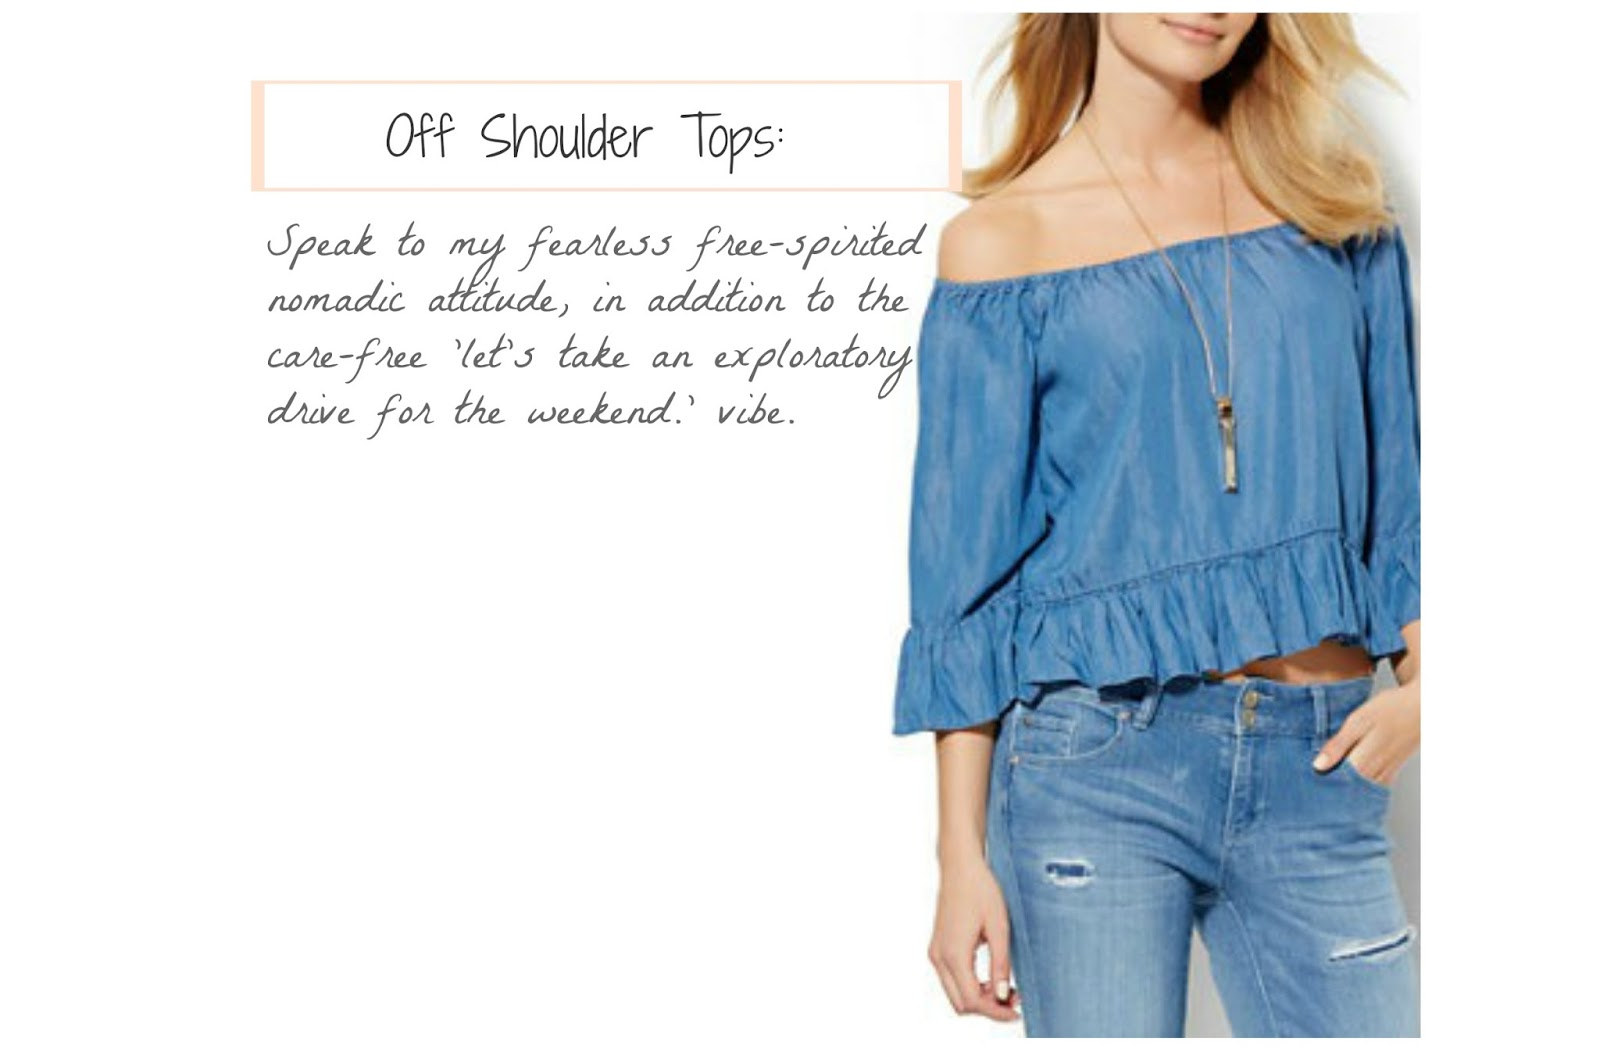 Spring-2016-Fashion-Style-Mood-Flare-Jeans-Tie-Neck-Off-Shoulder-Blouse-Mules-Clogs